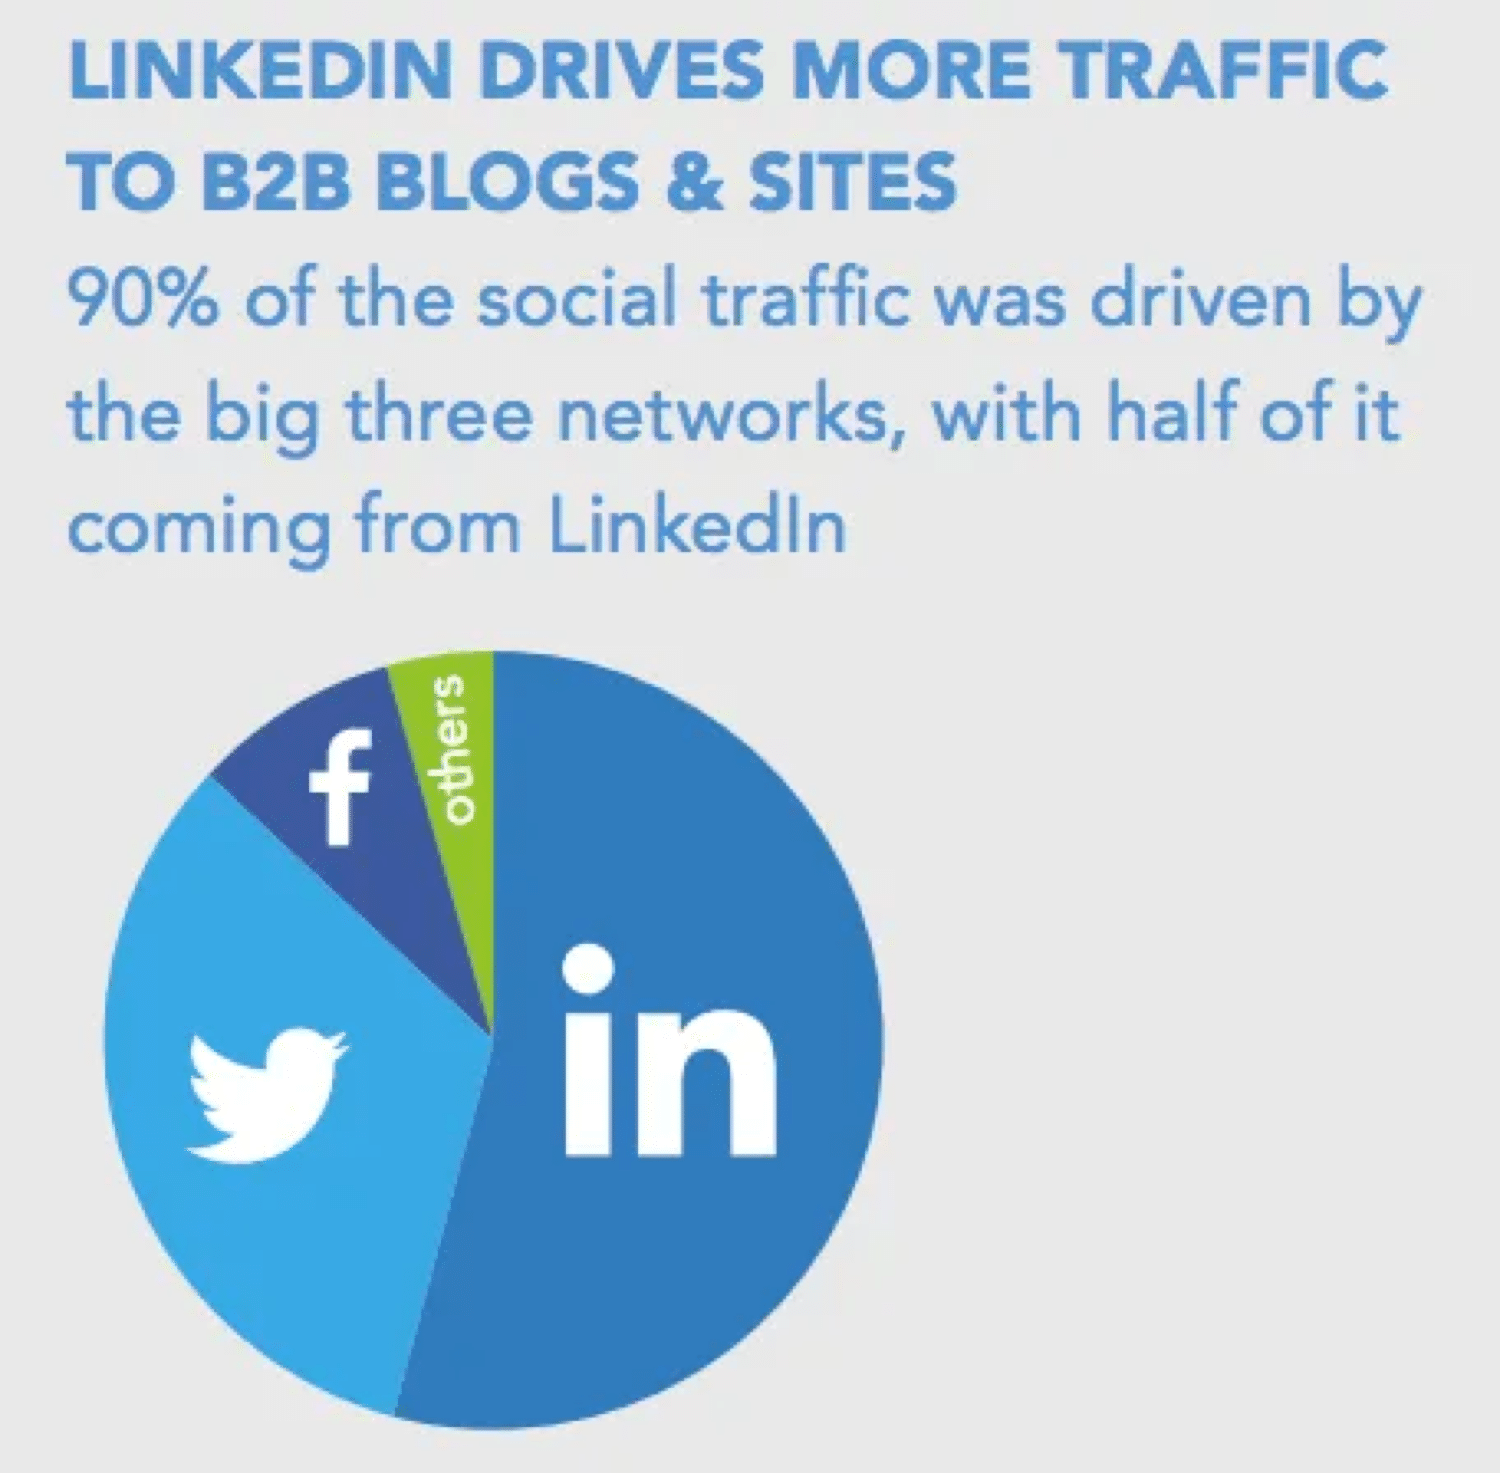 social traffic is driven by LinkedIn to B2B sites